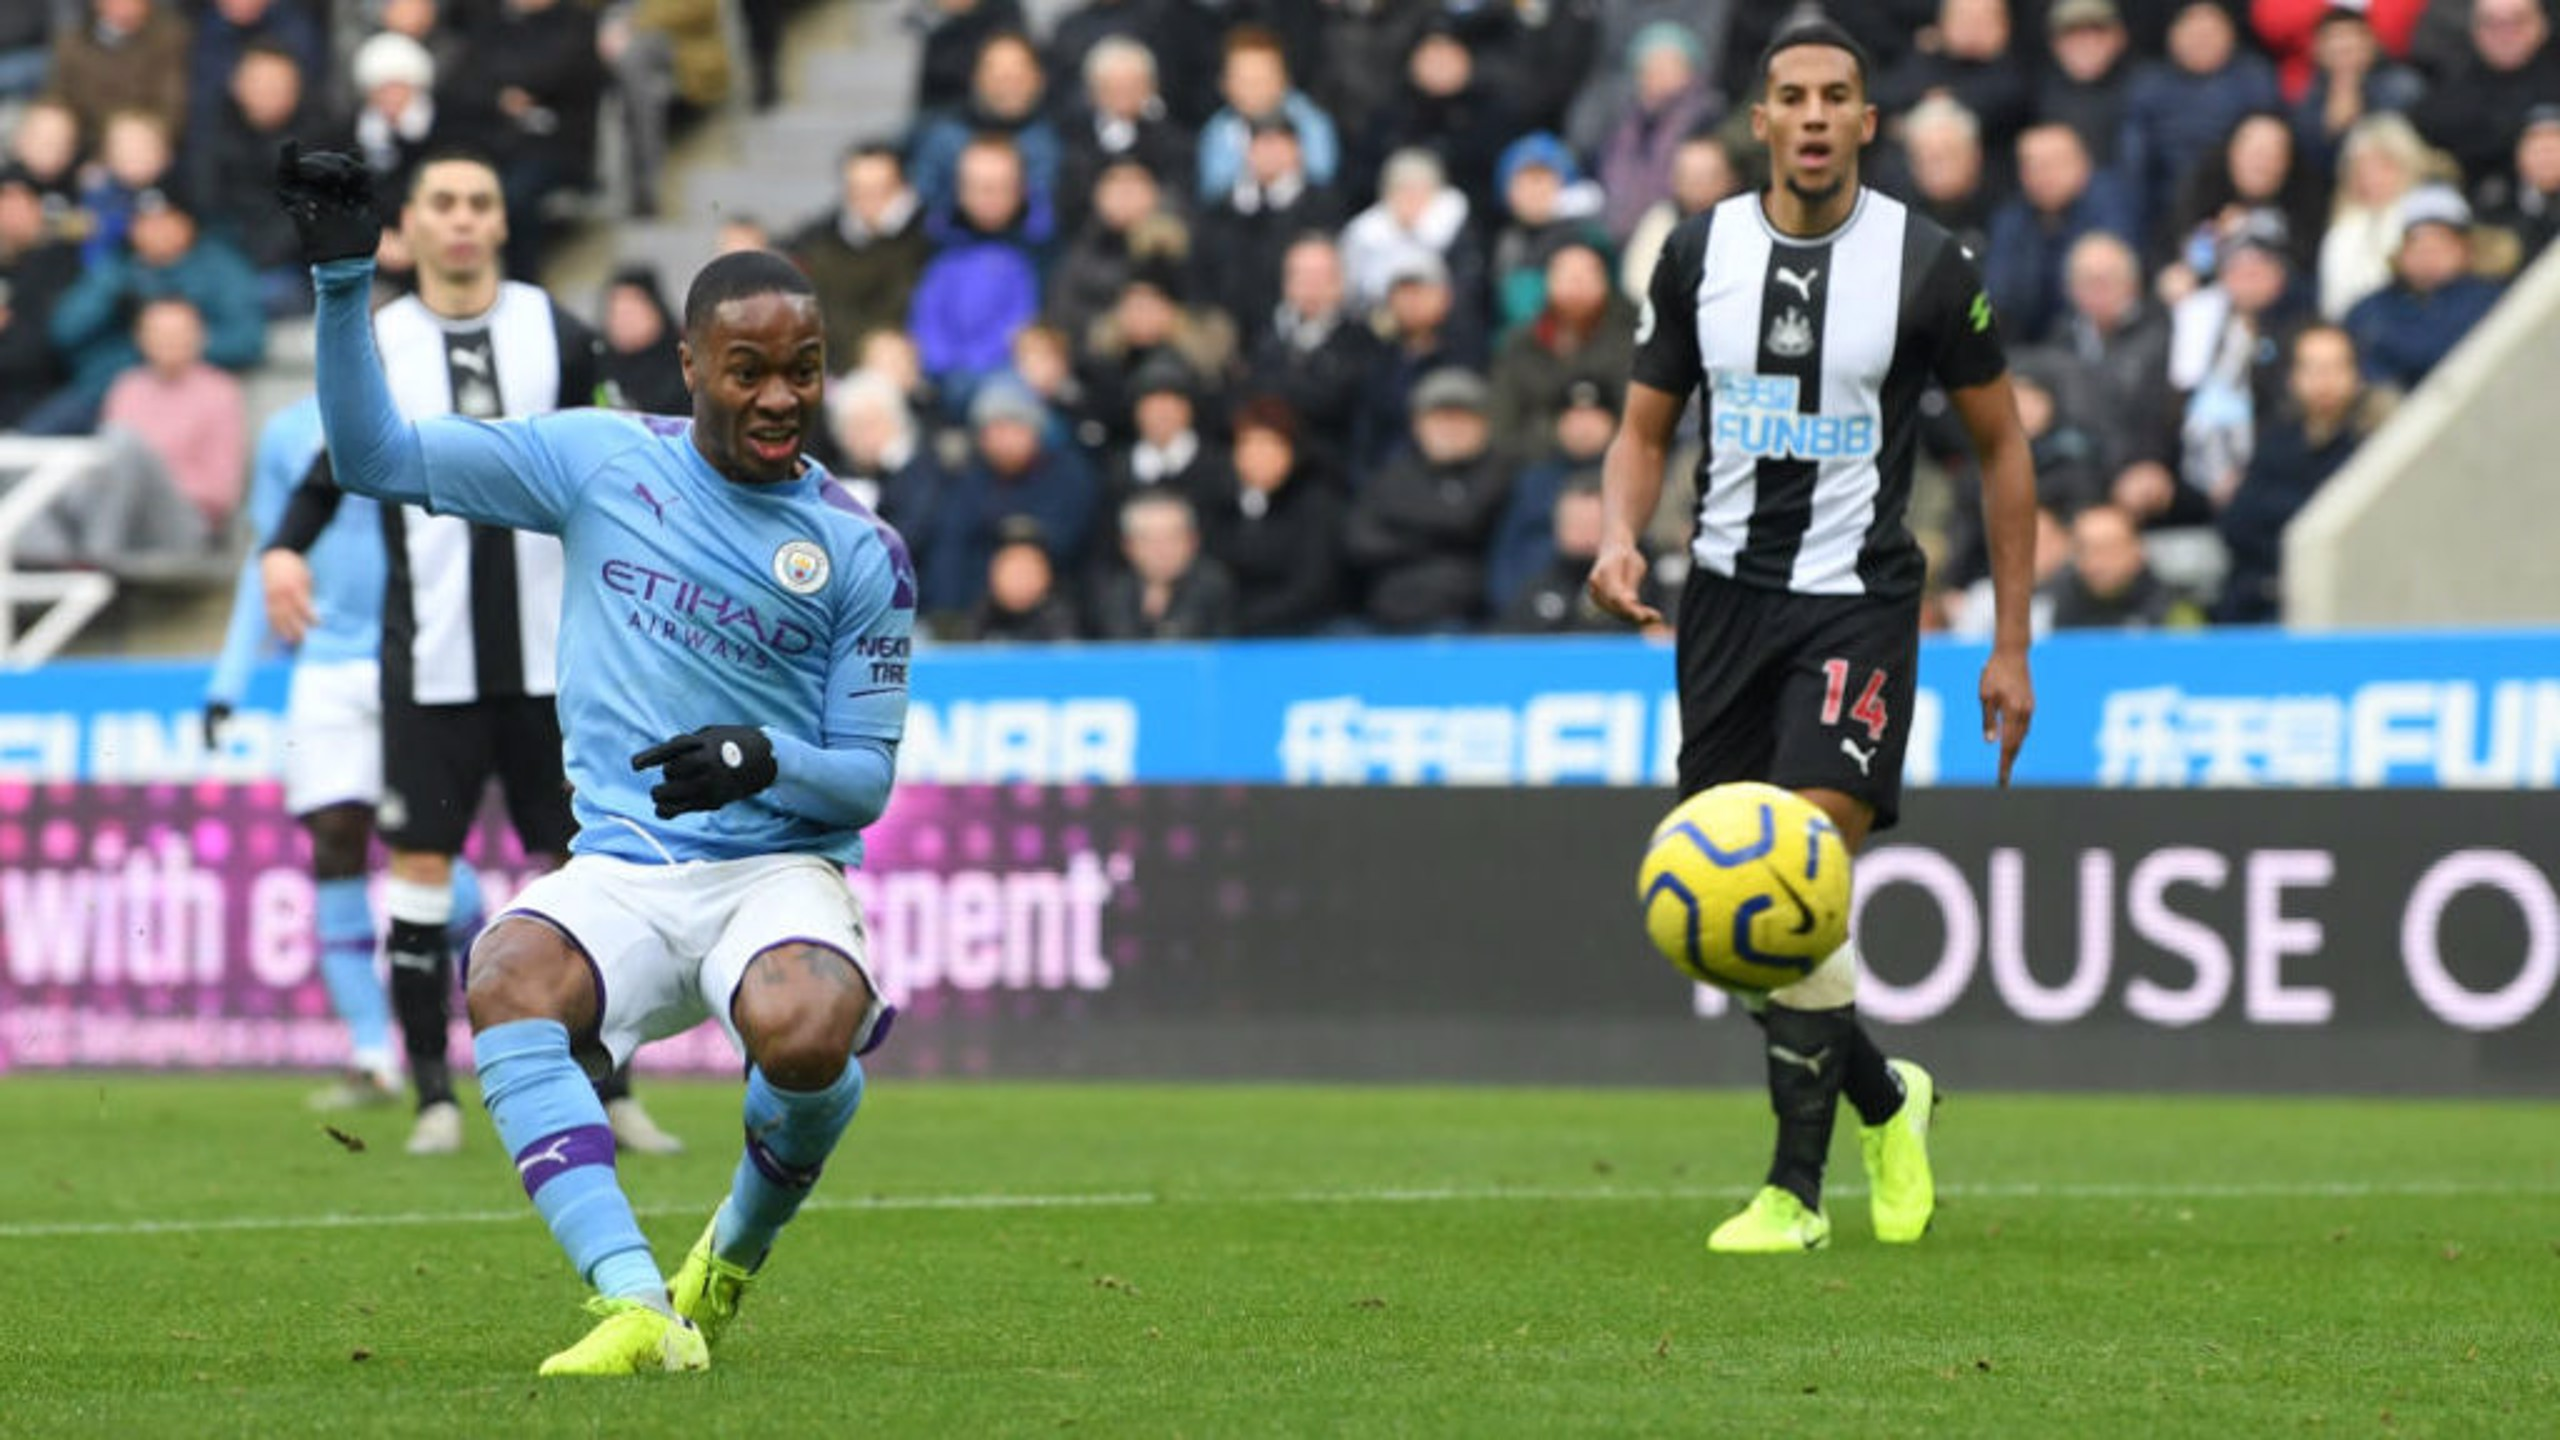 CLASS: Sterling finishes off a fine move to out City ahead